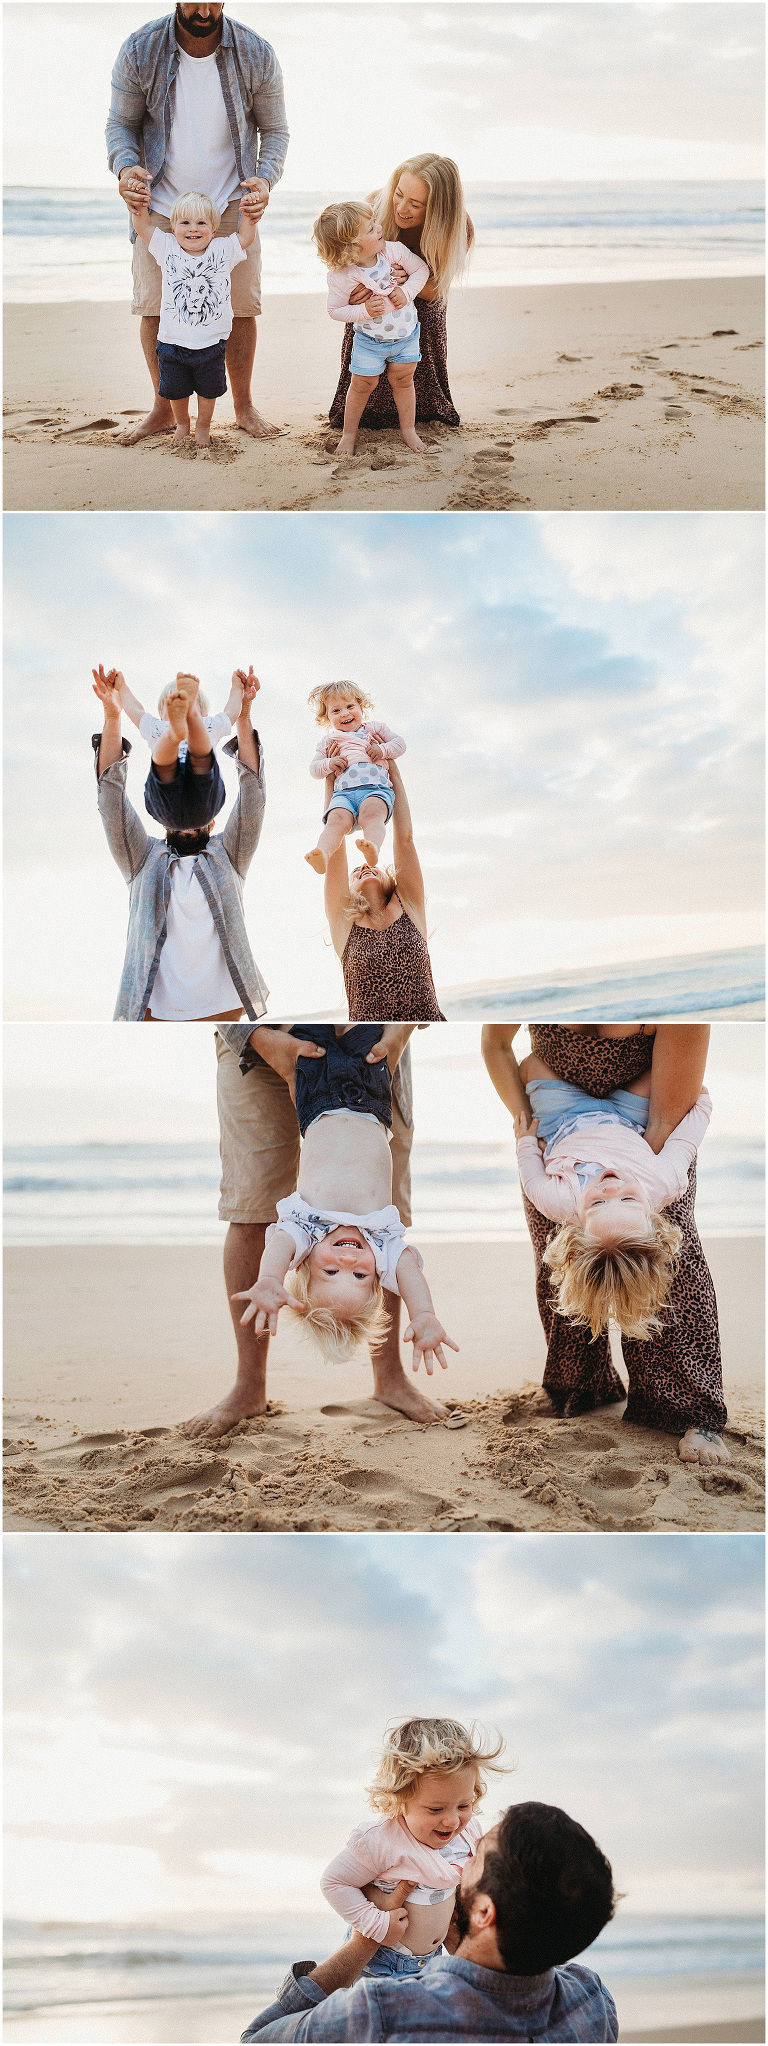 Fun_Twins_Photography_lifestyle_beach_session